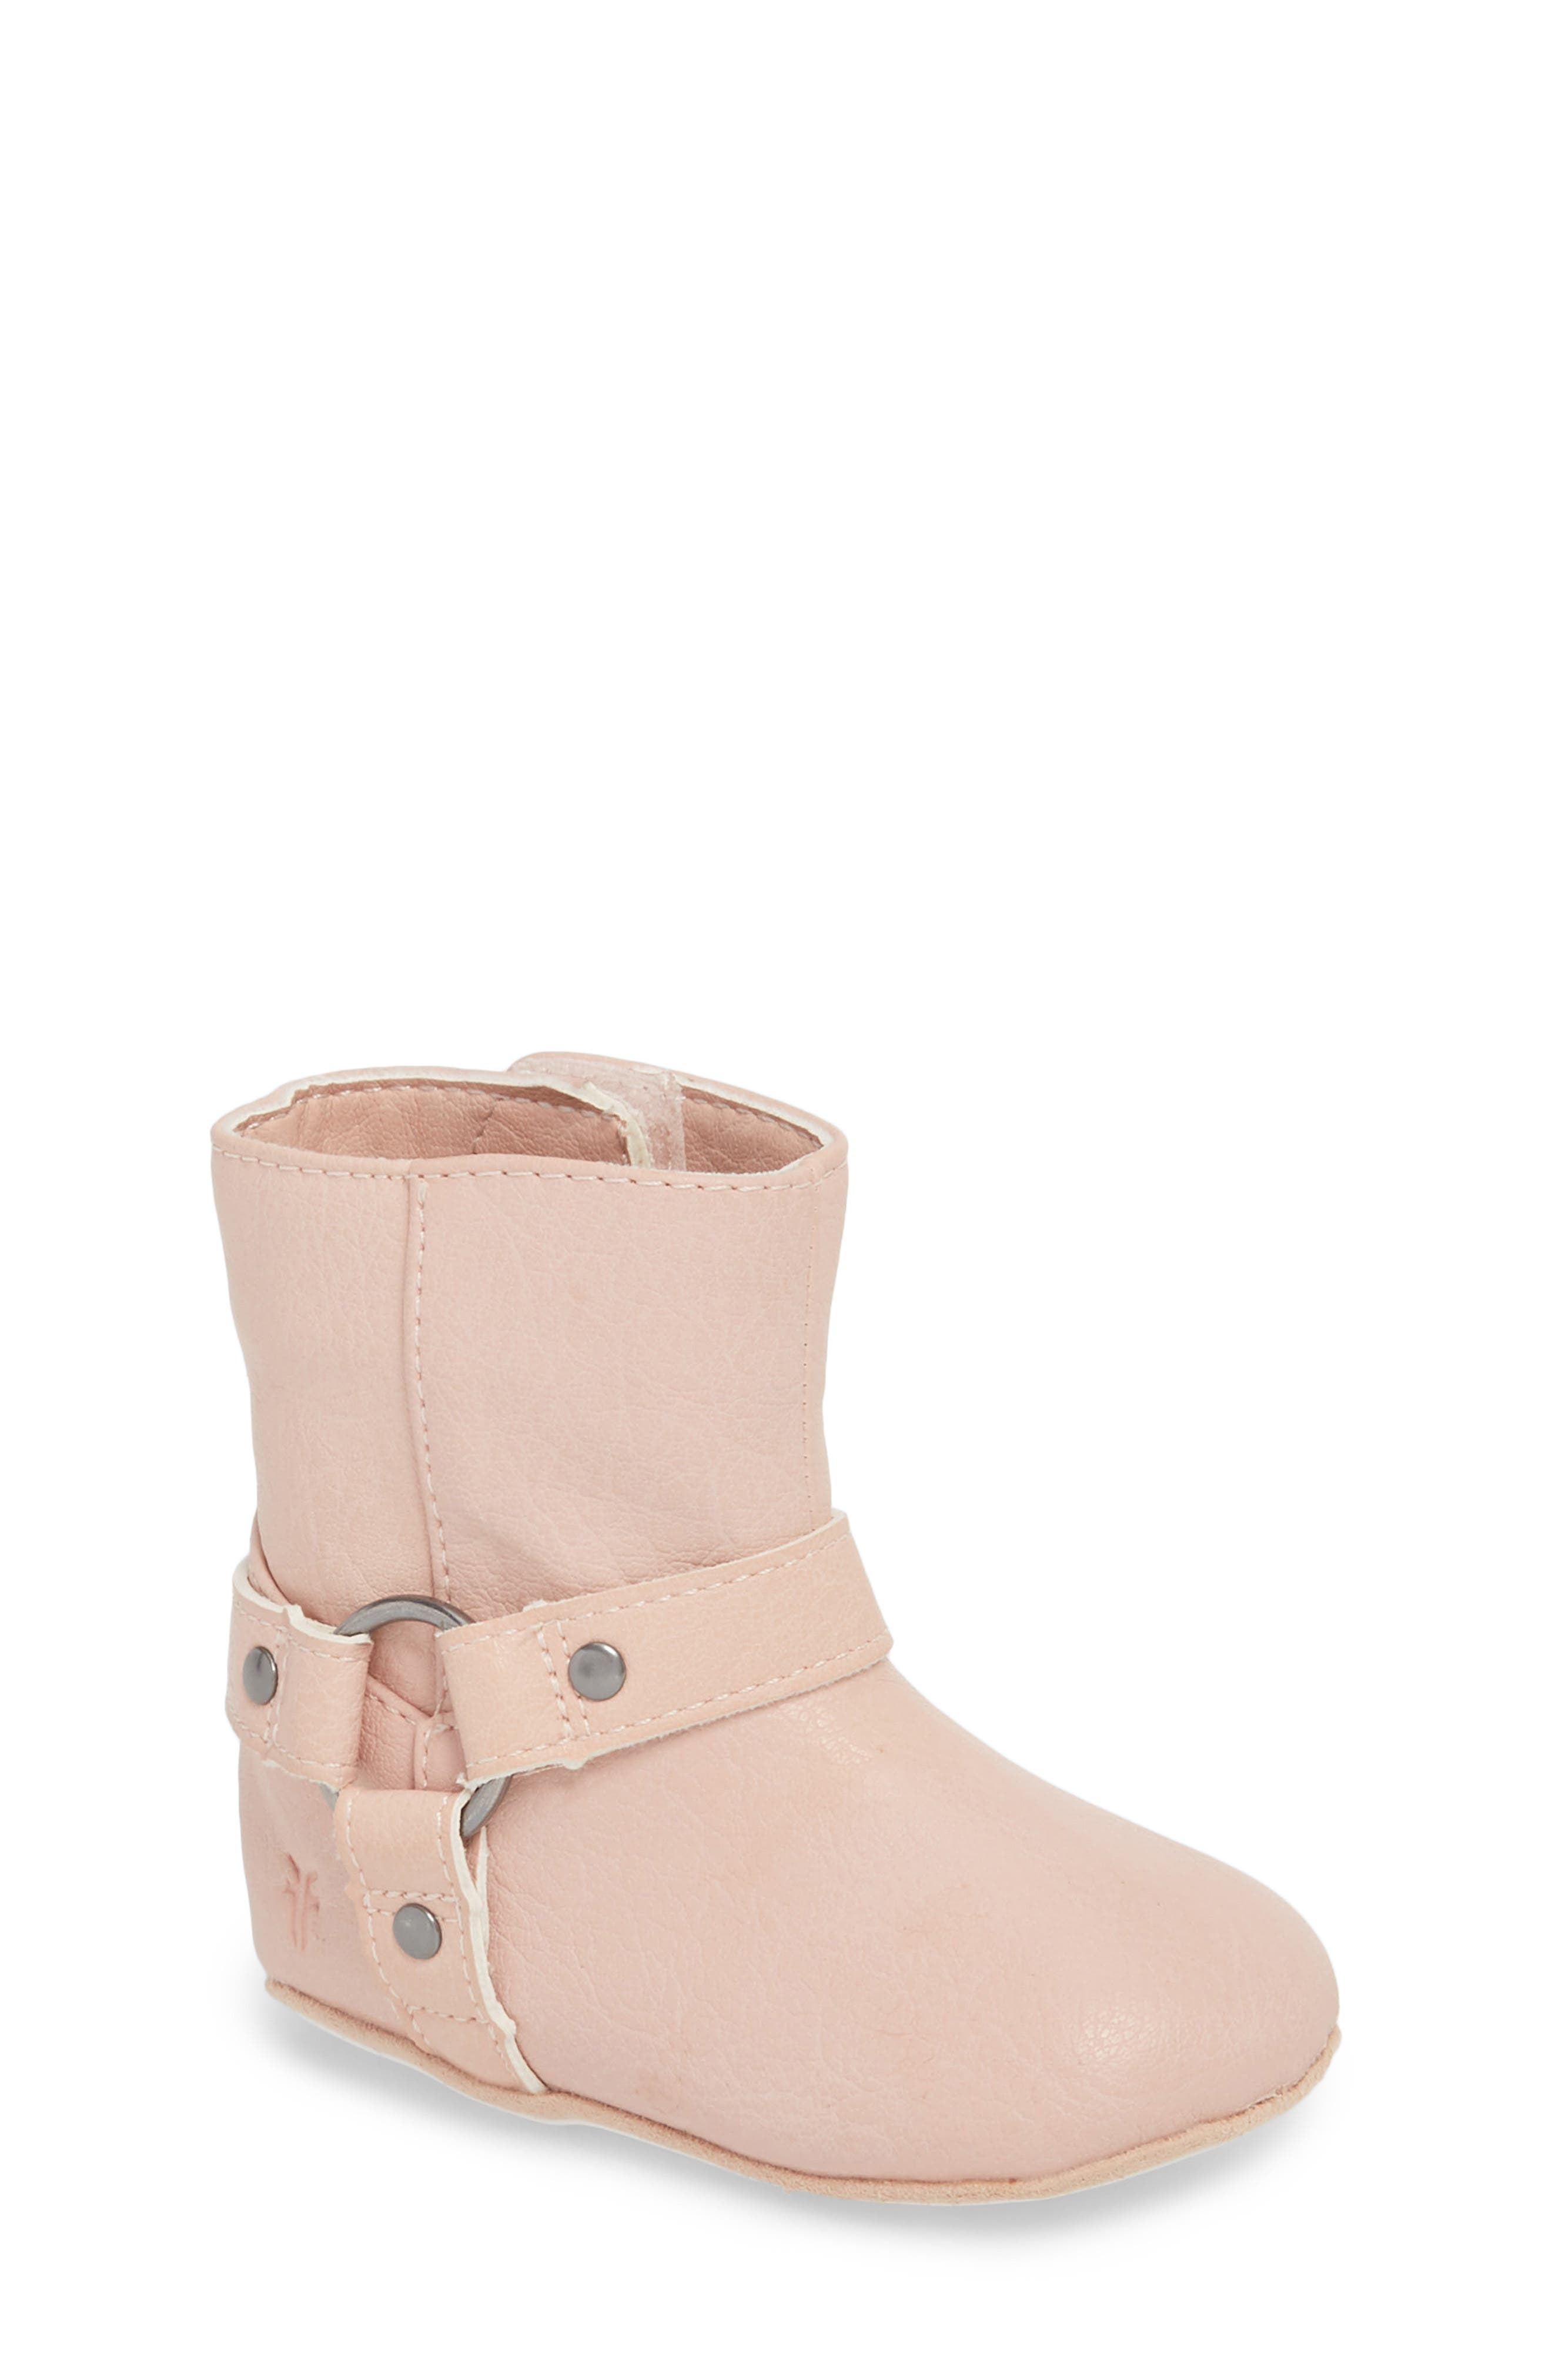 Harness Boot Crib Shoe,                         Main,                         color, Baby Pink